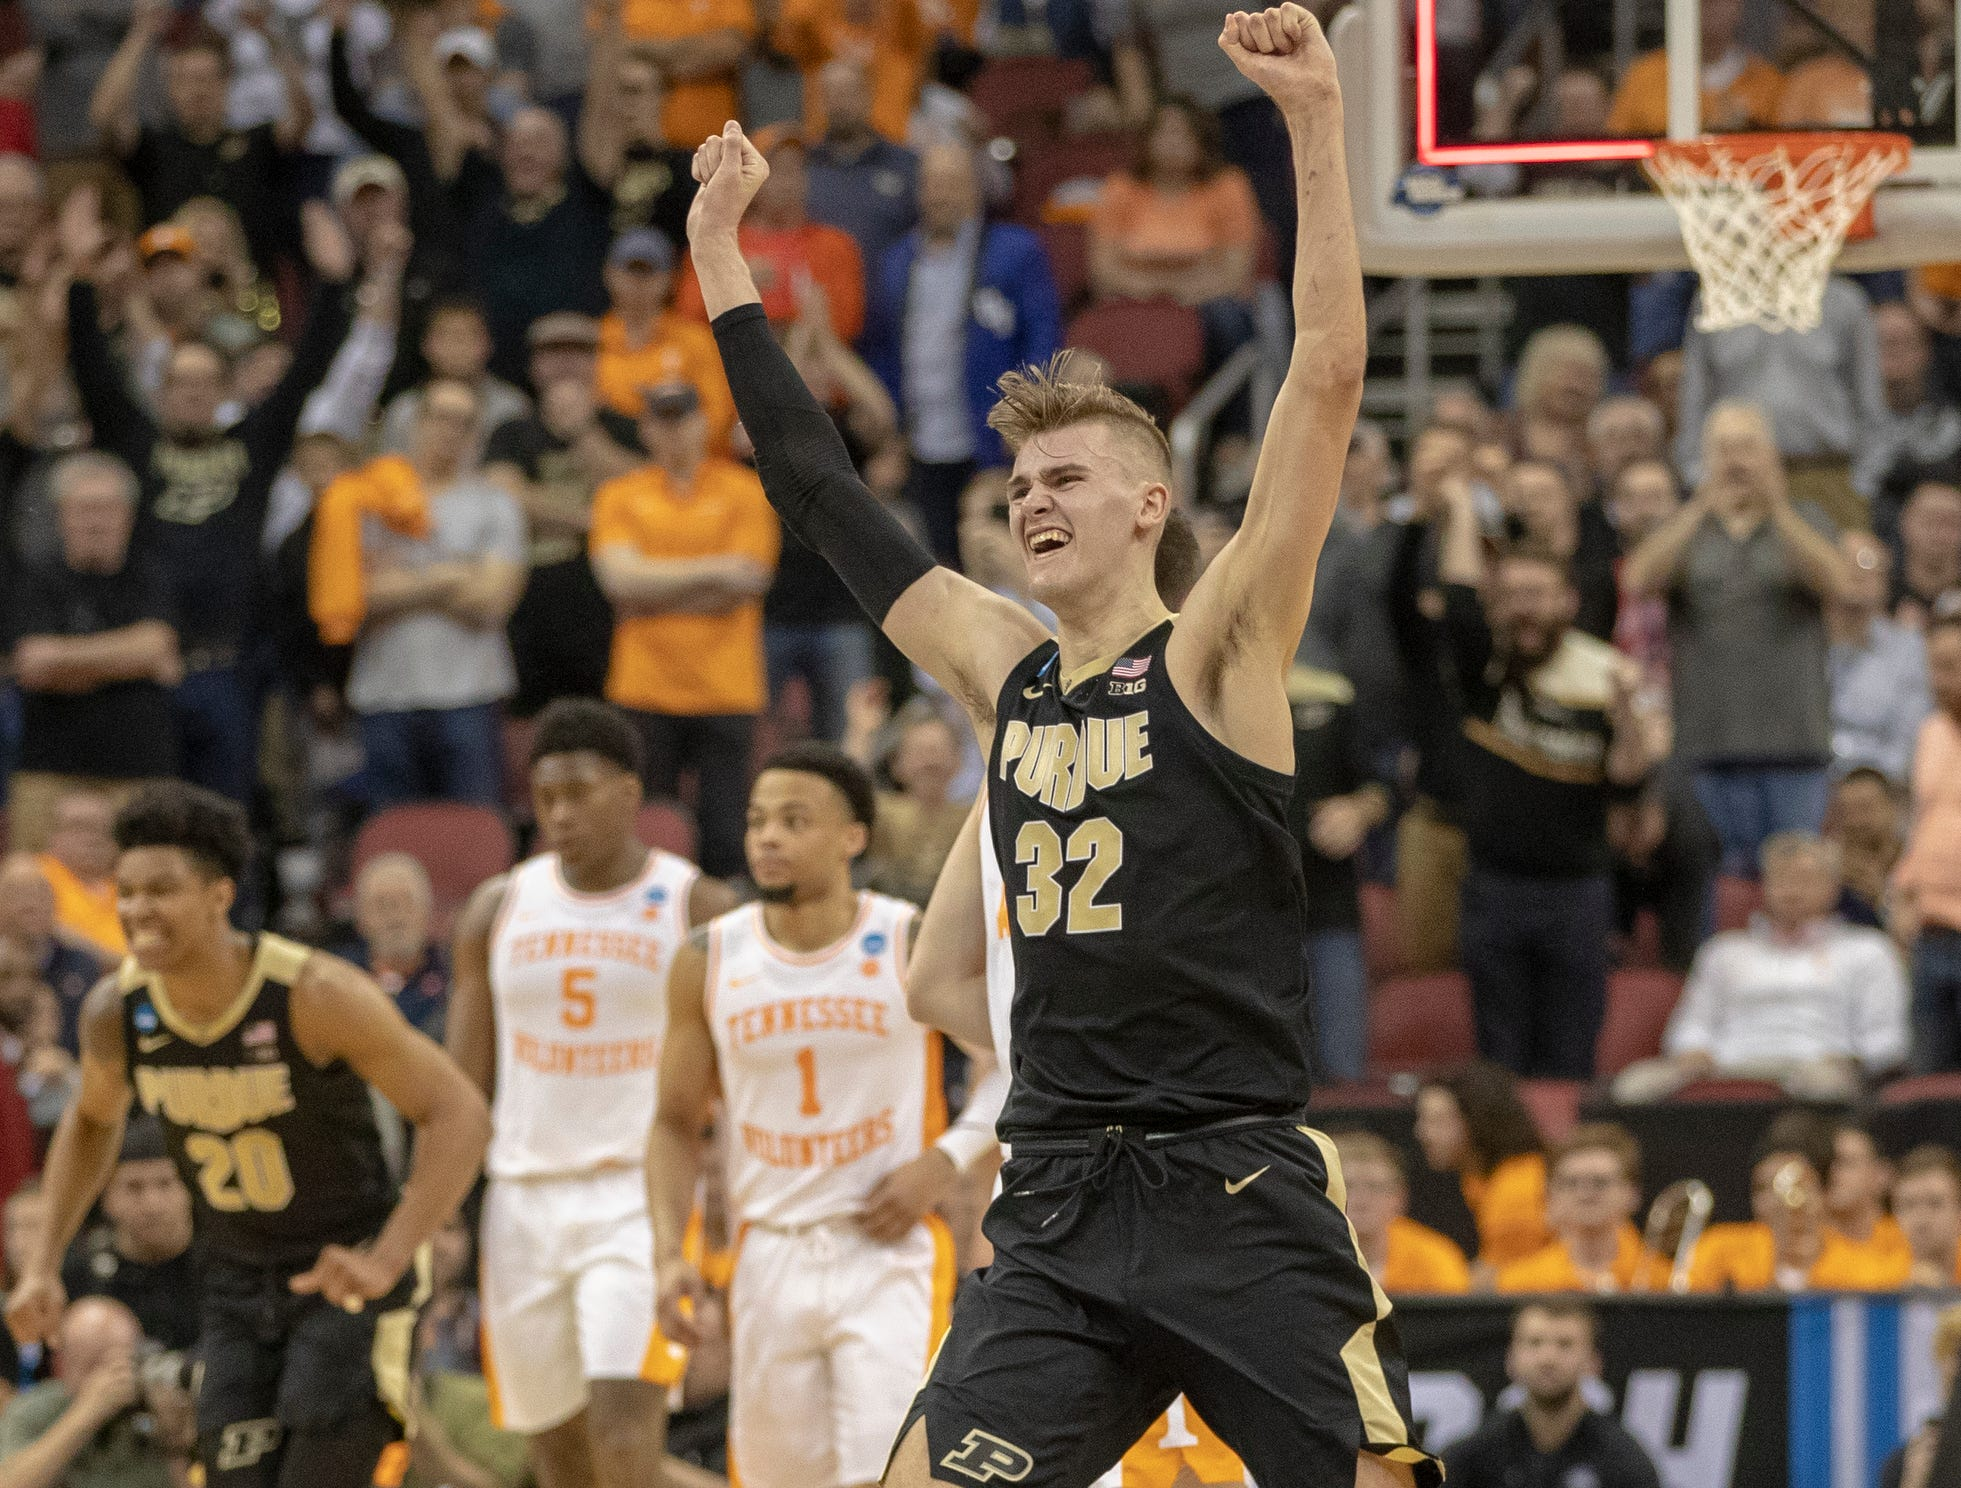 Matt Haarms of the Purdue Boilermakers cheers after their victory over Tennessee, NCAA Division 1 Men's Basketball 'Sweet Sixteen' game, KFC Yum Center, Louisville, Thursday, March 28, 2019. Purdue beat Tennessee 99-94.